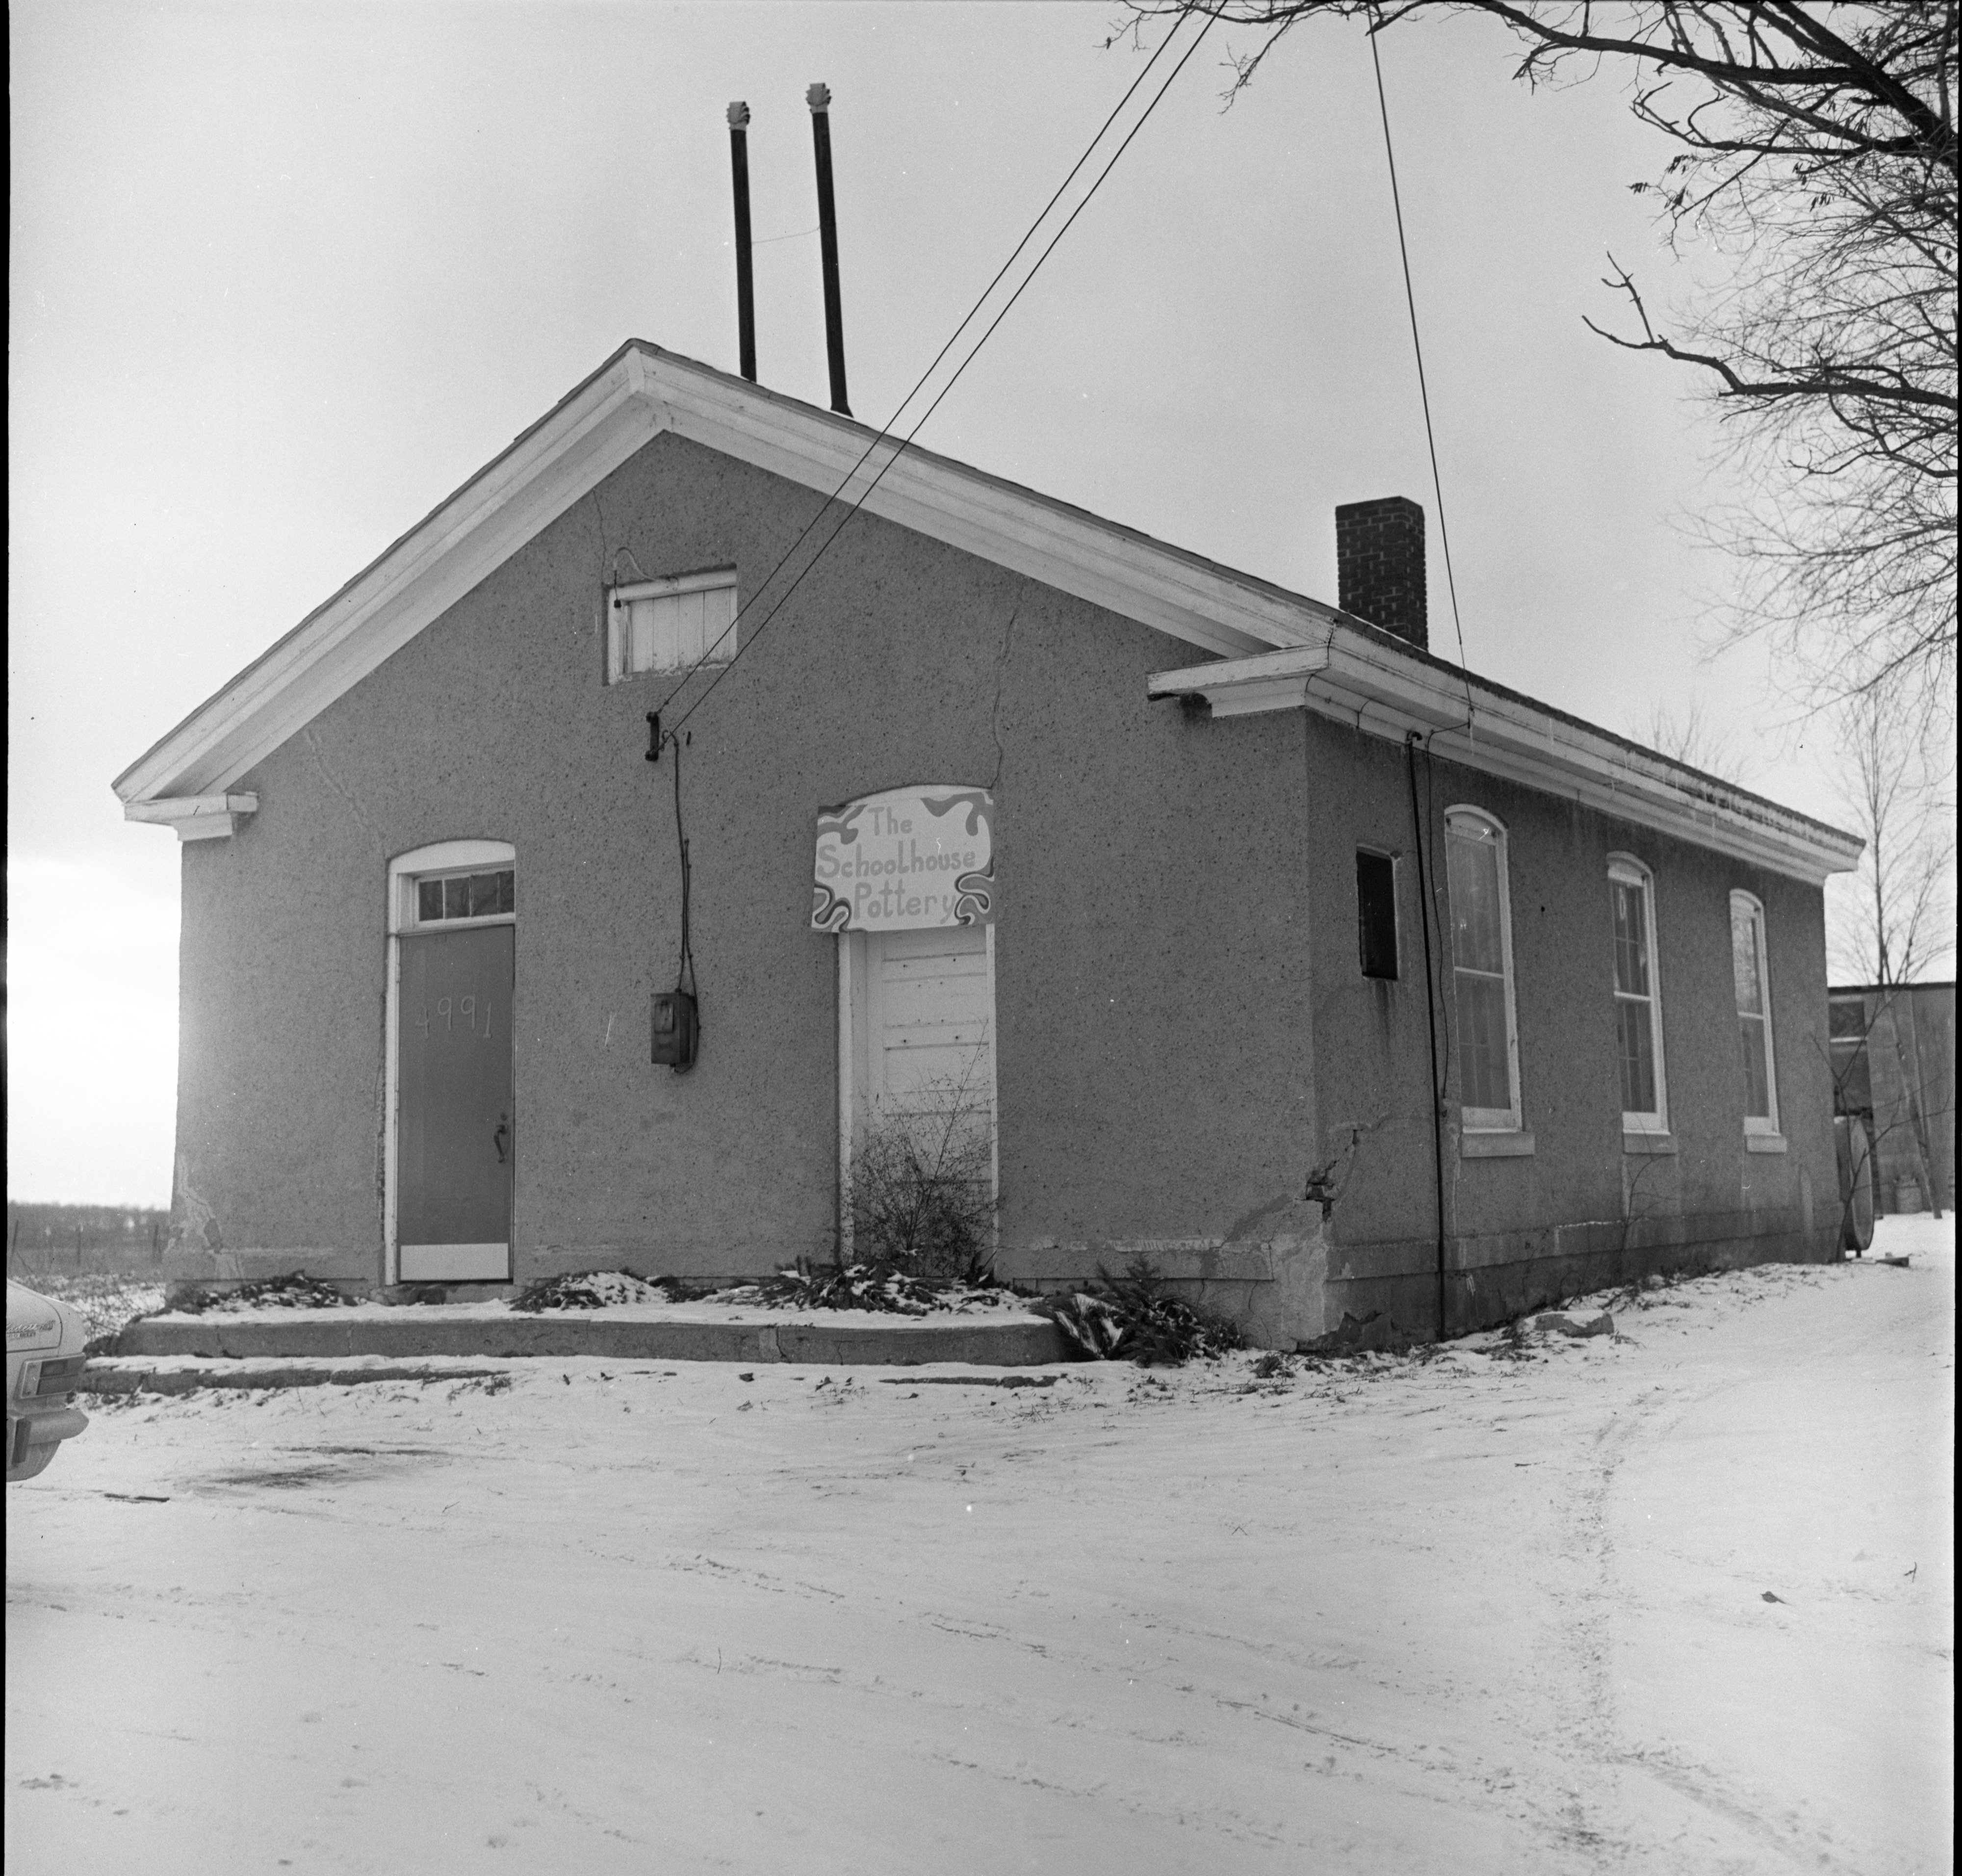 The Schoolhouse Pottery Studio In The Former Braun School, December 1969 image